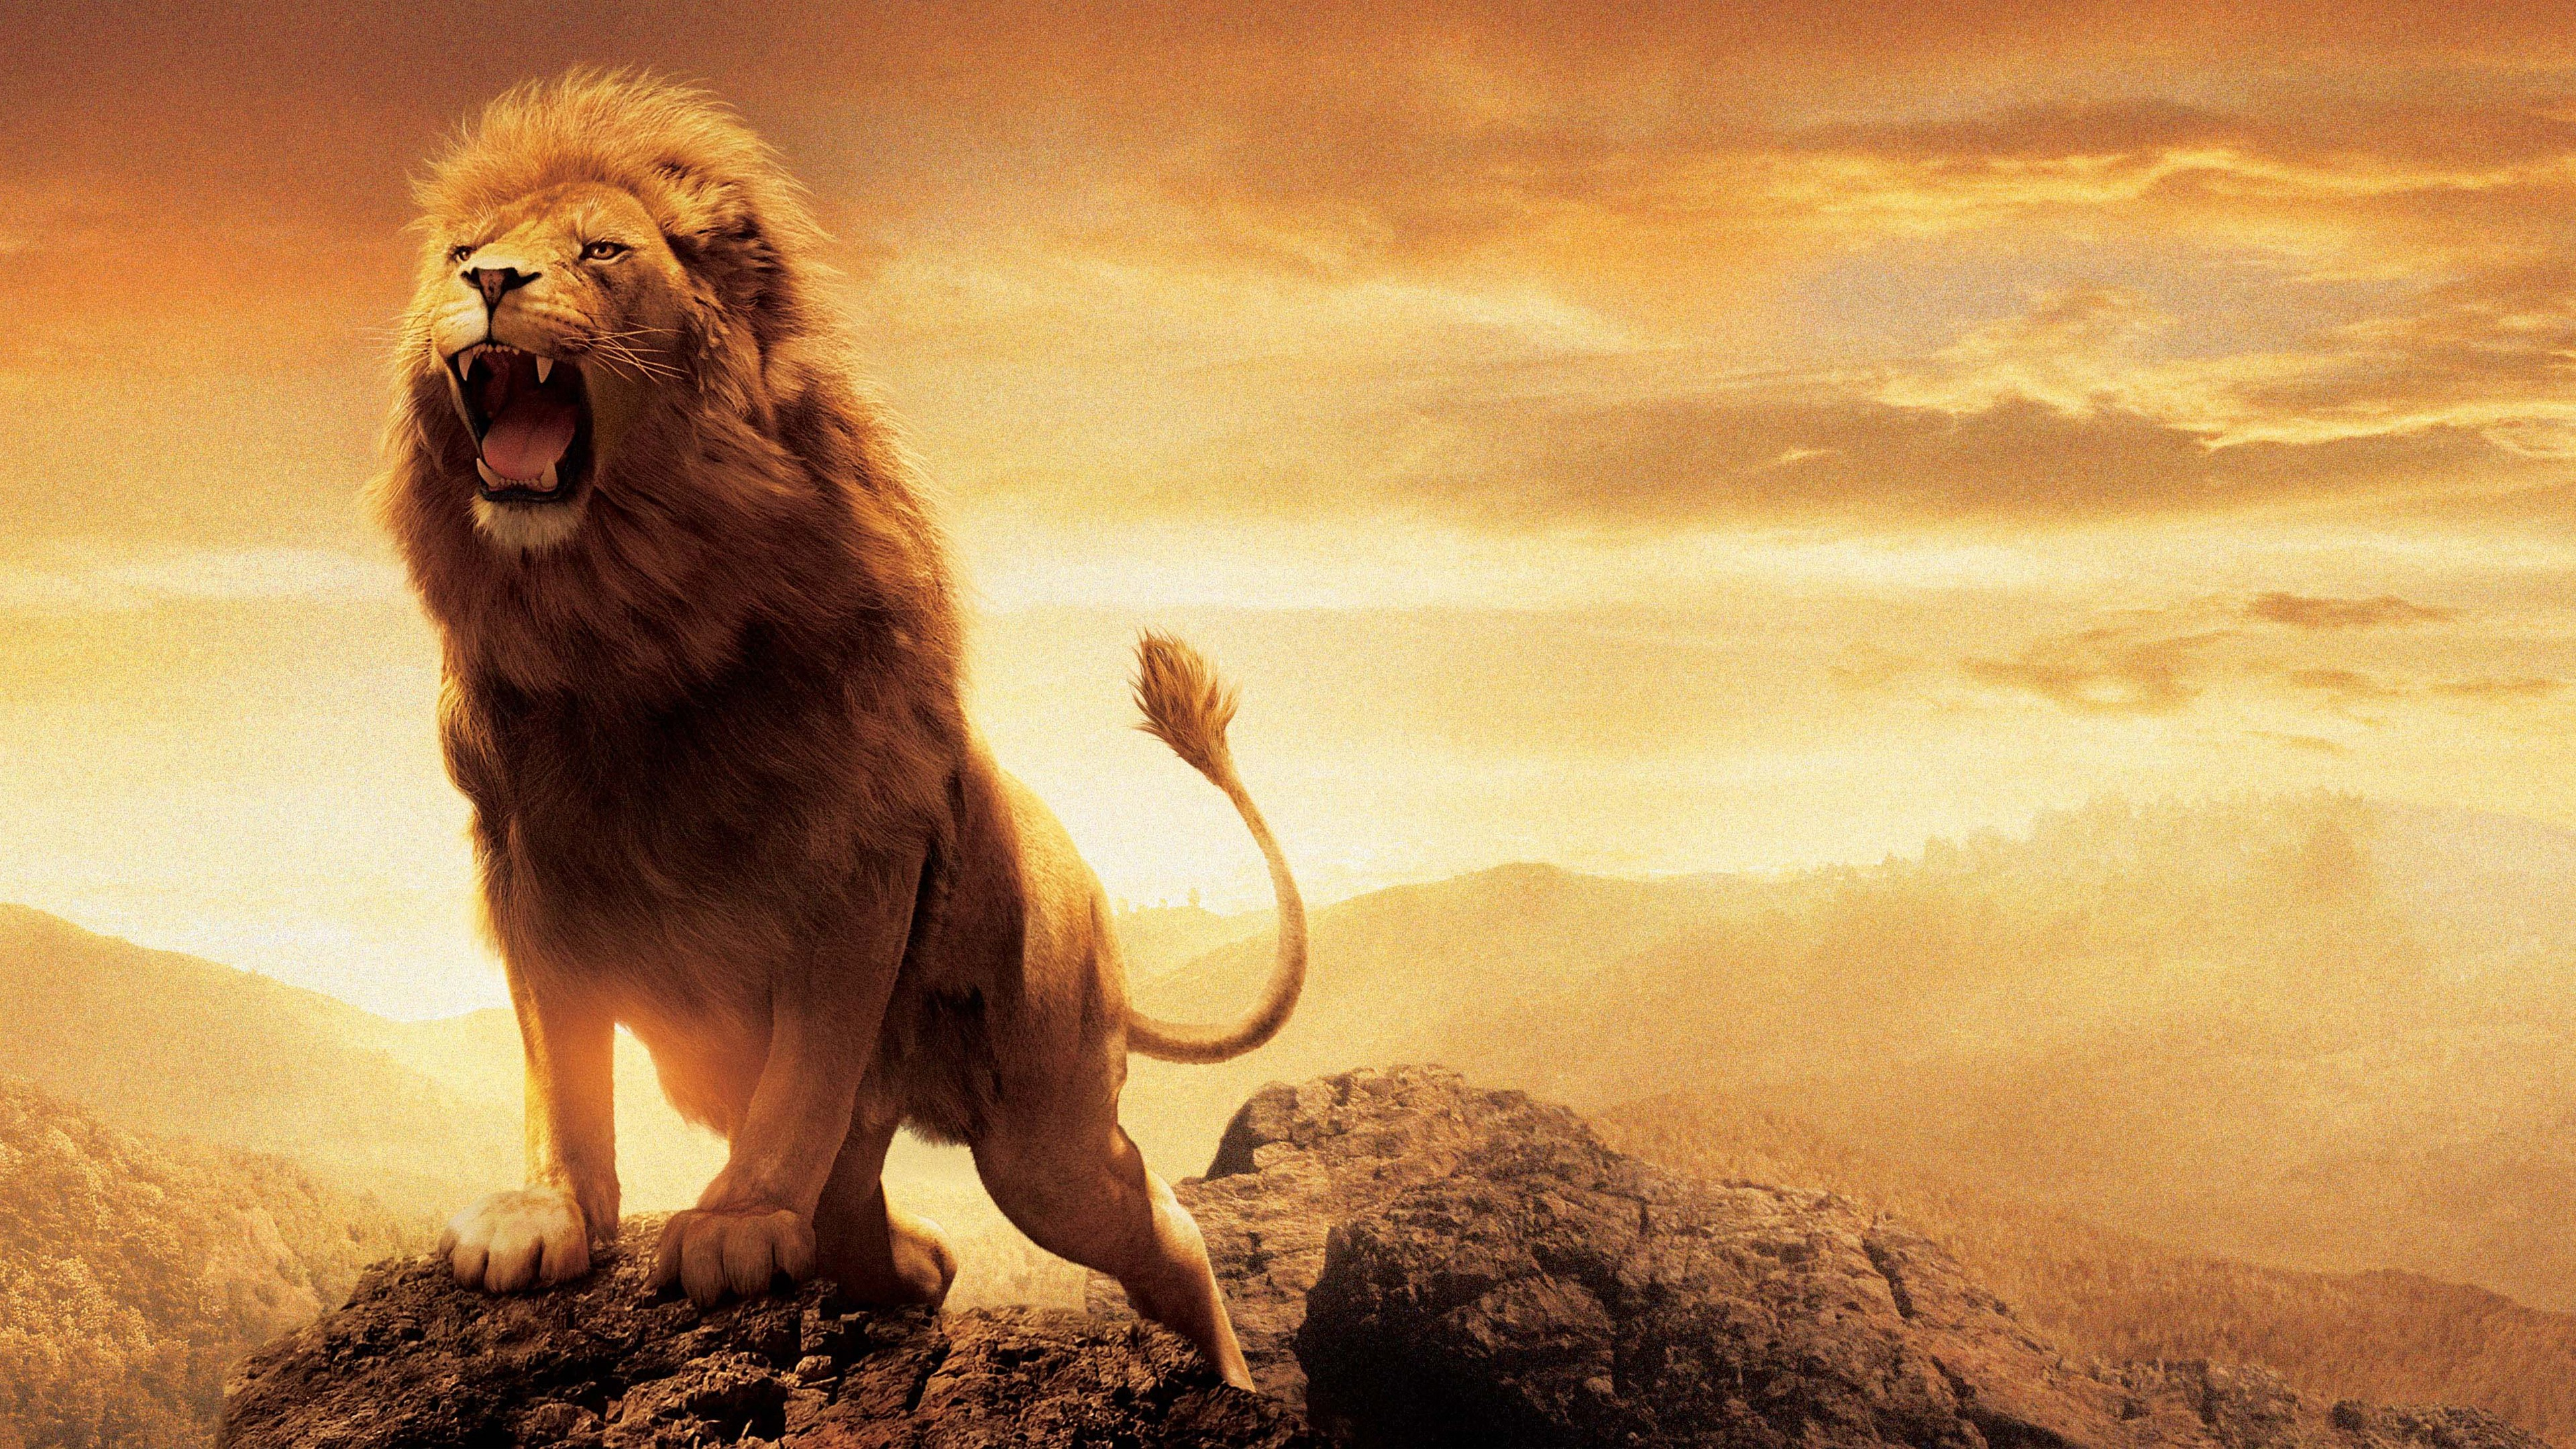 3840x2160 > Lion HD wallpapers Wallpapers